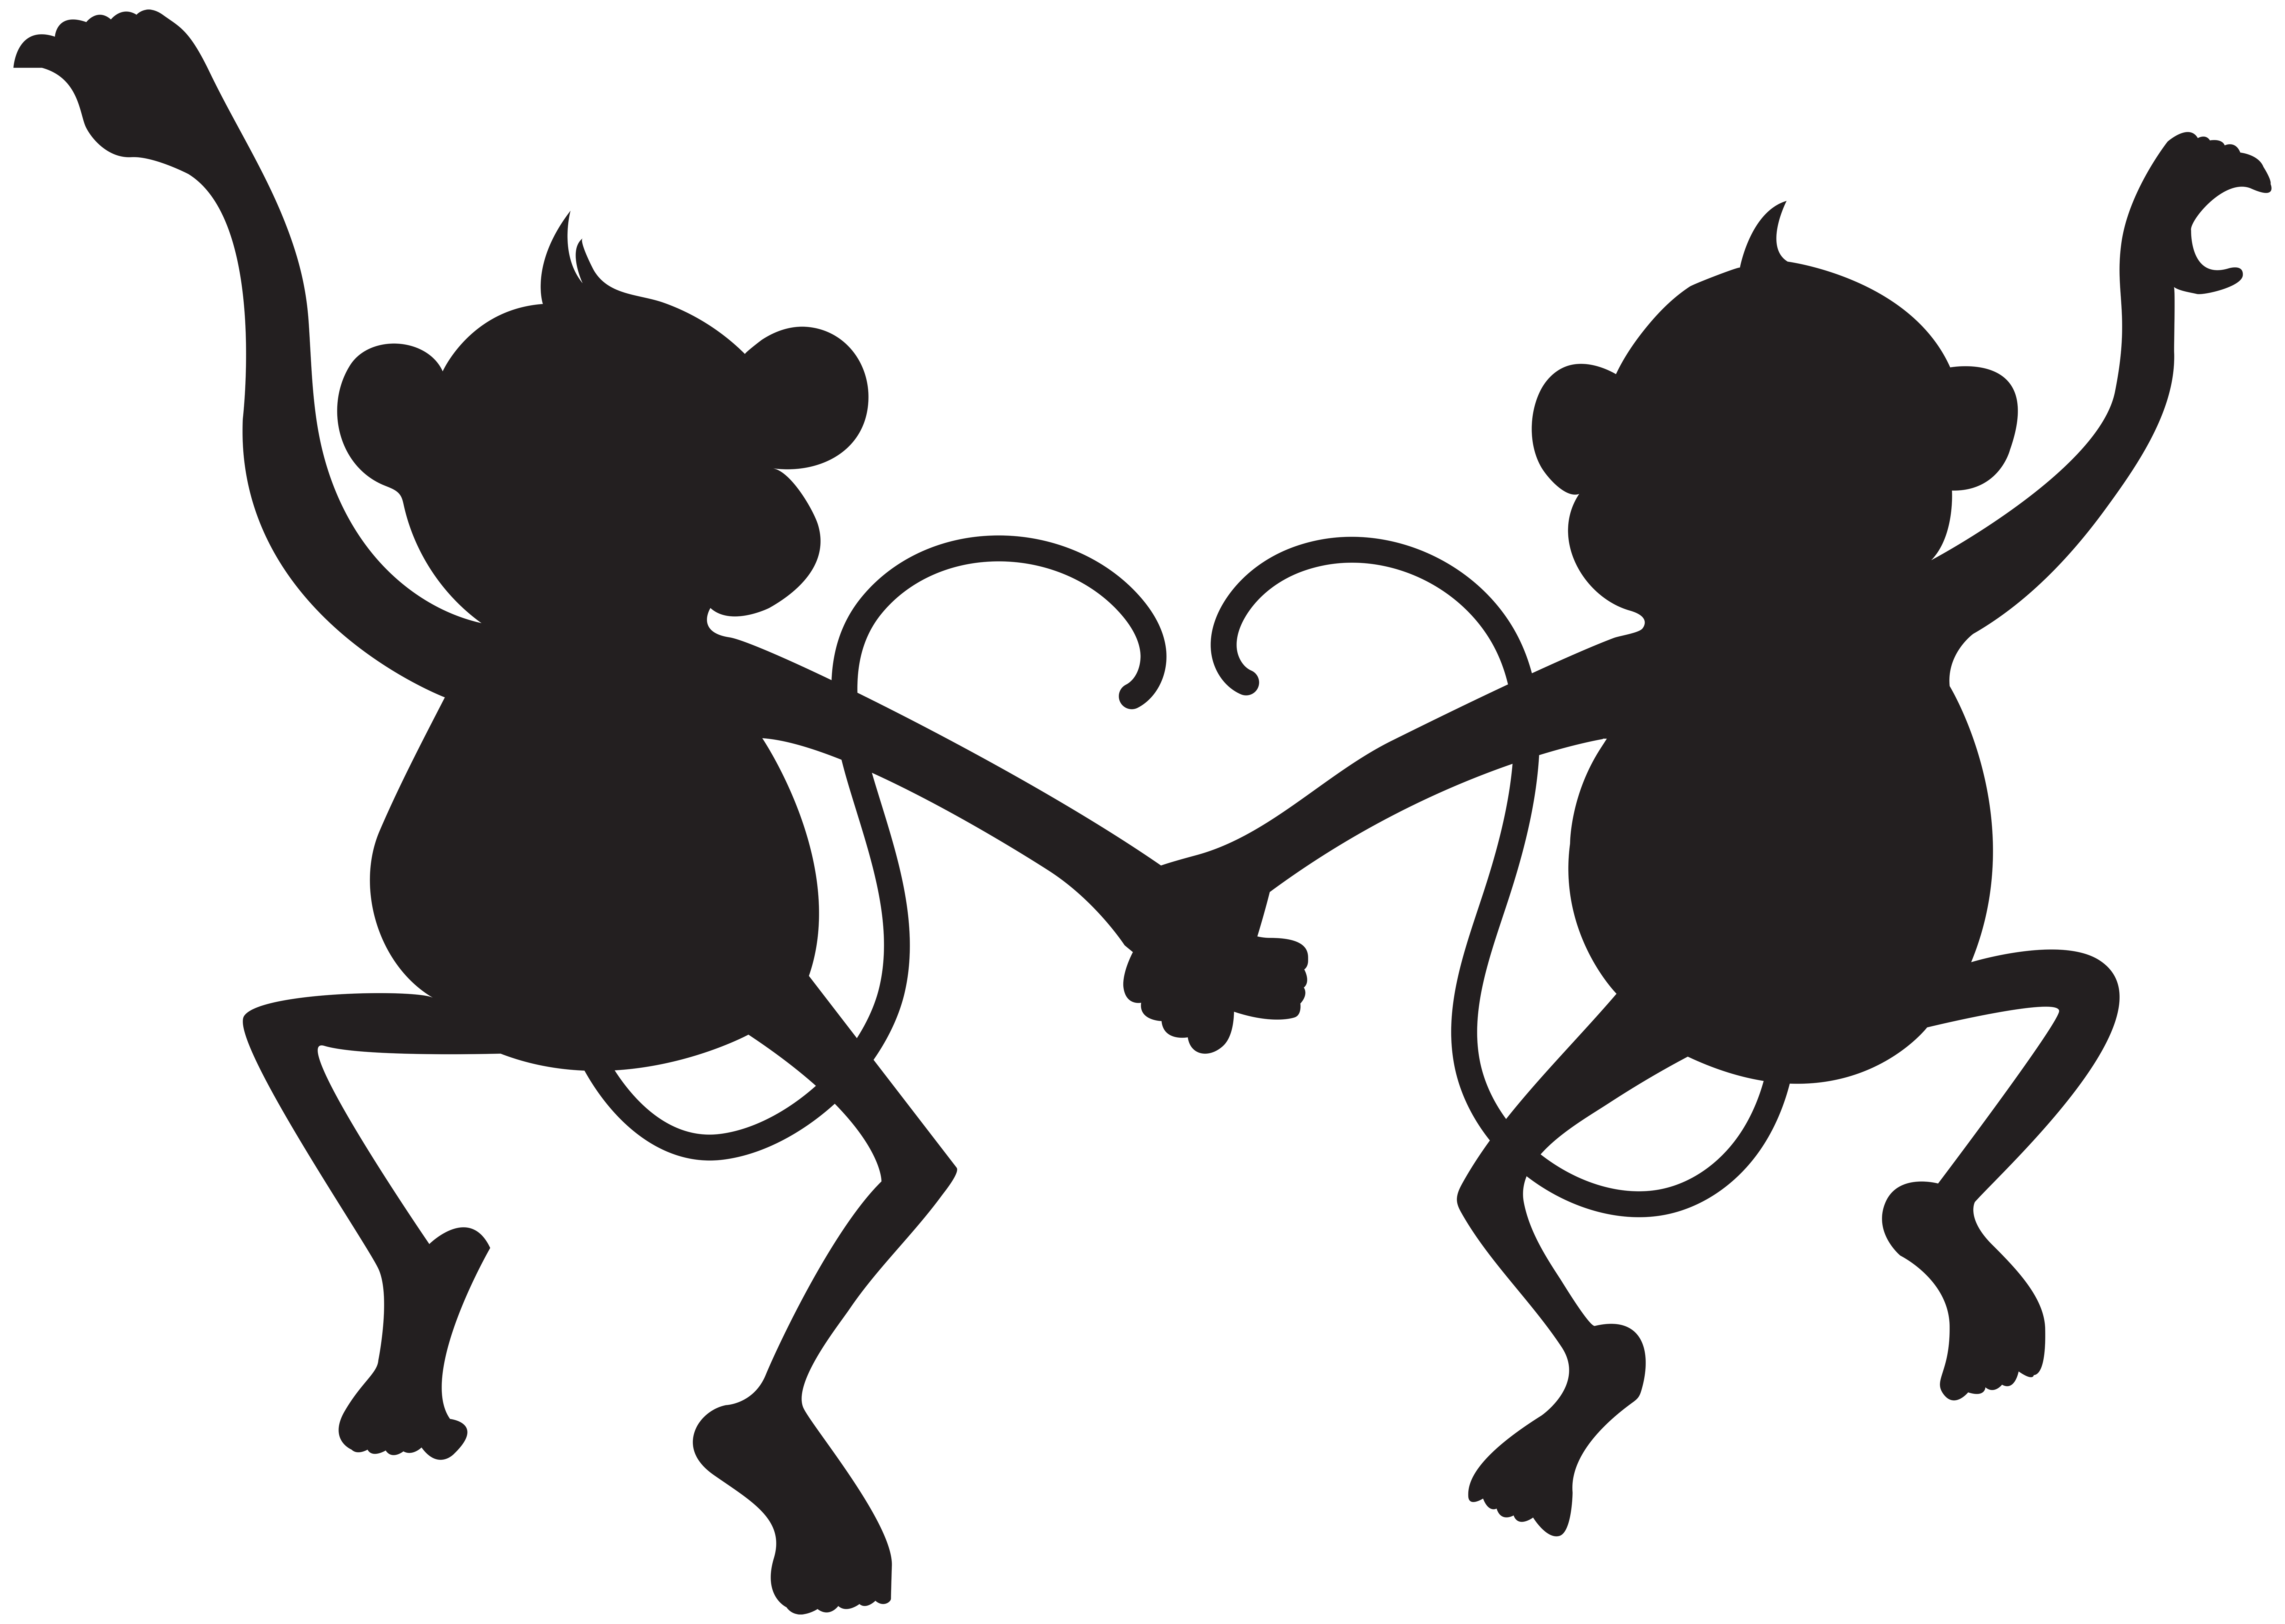 Monkey clipart silhouette. Clip art at getdrawings